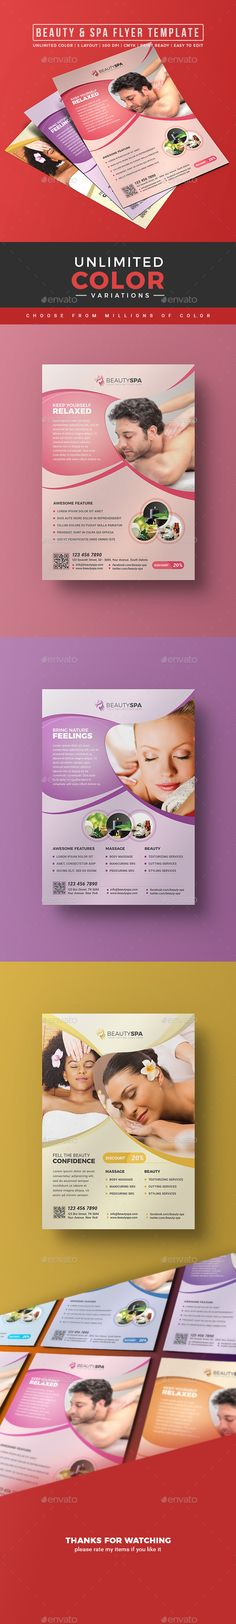 107 best Spa Flyer images on Pinterest Font logo, Fonts and - advertisement brochure